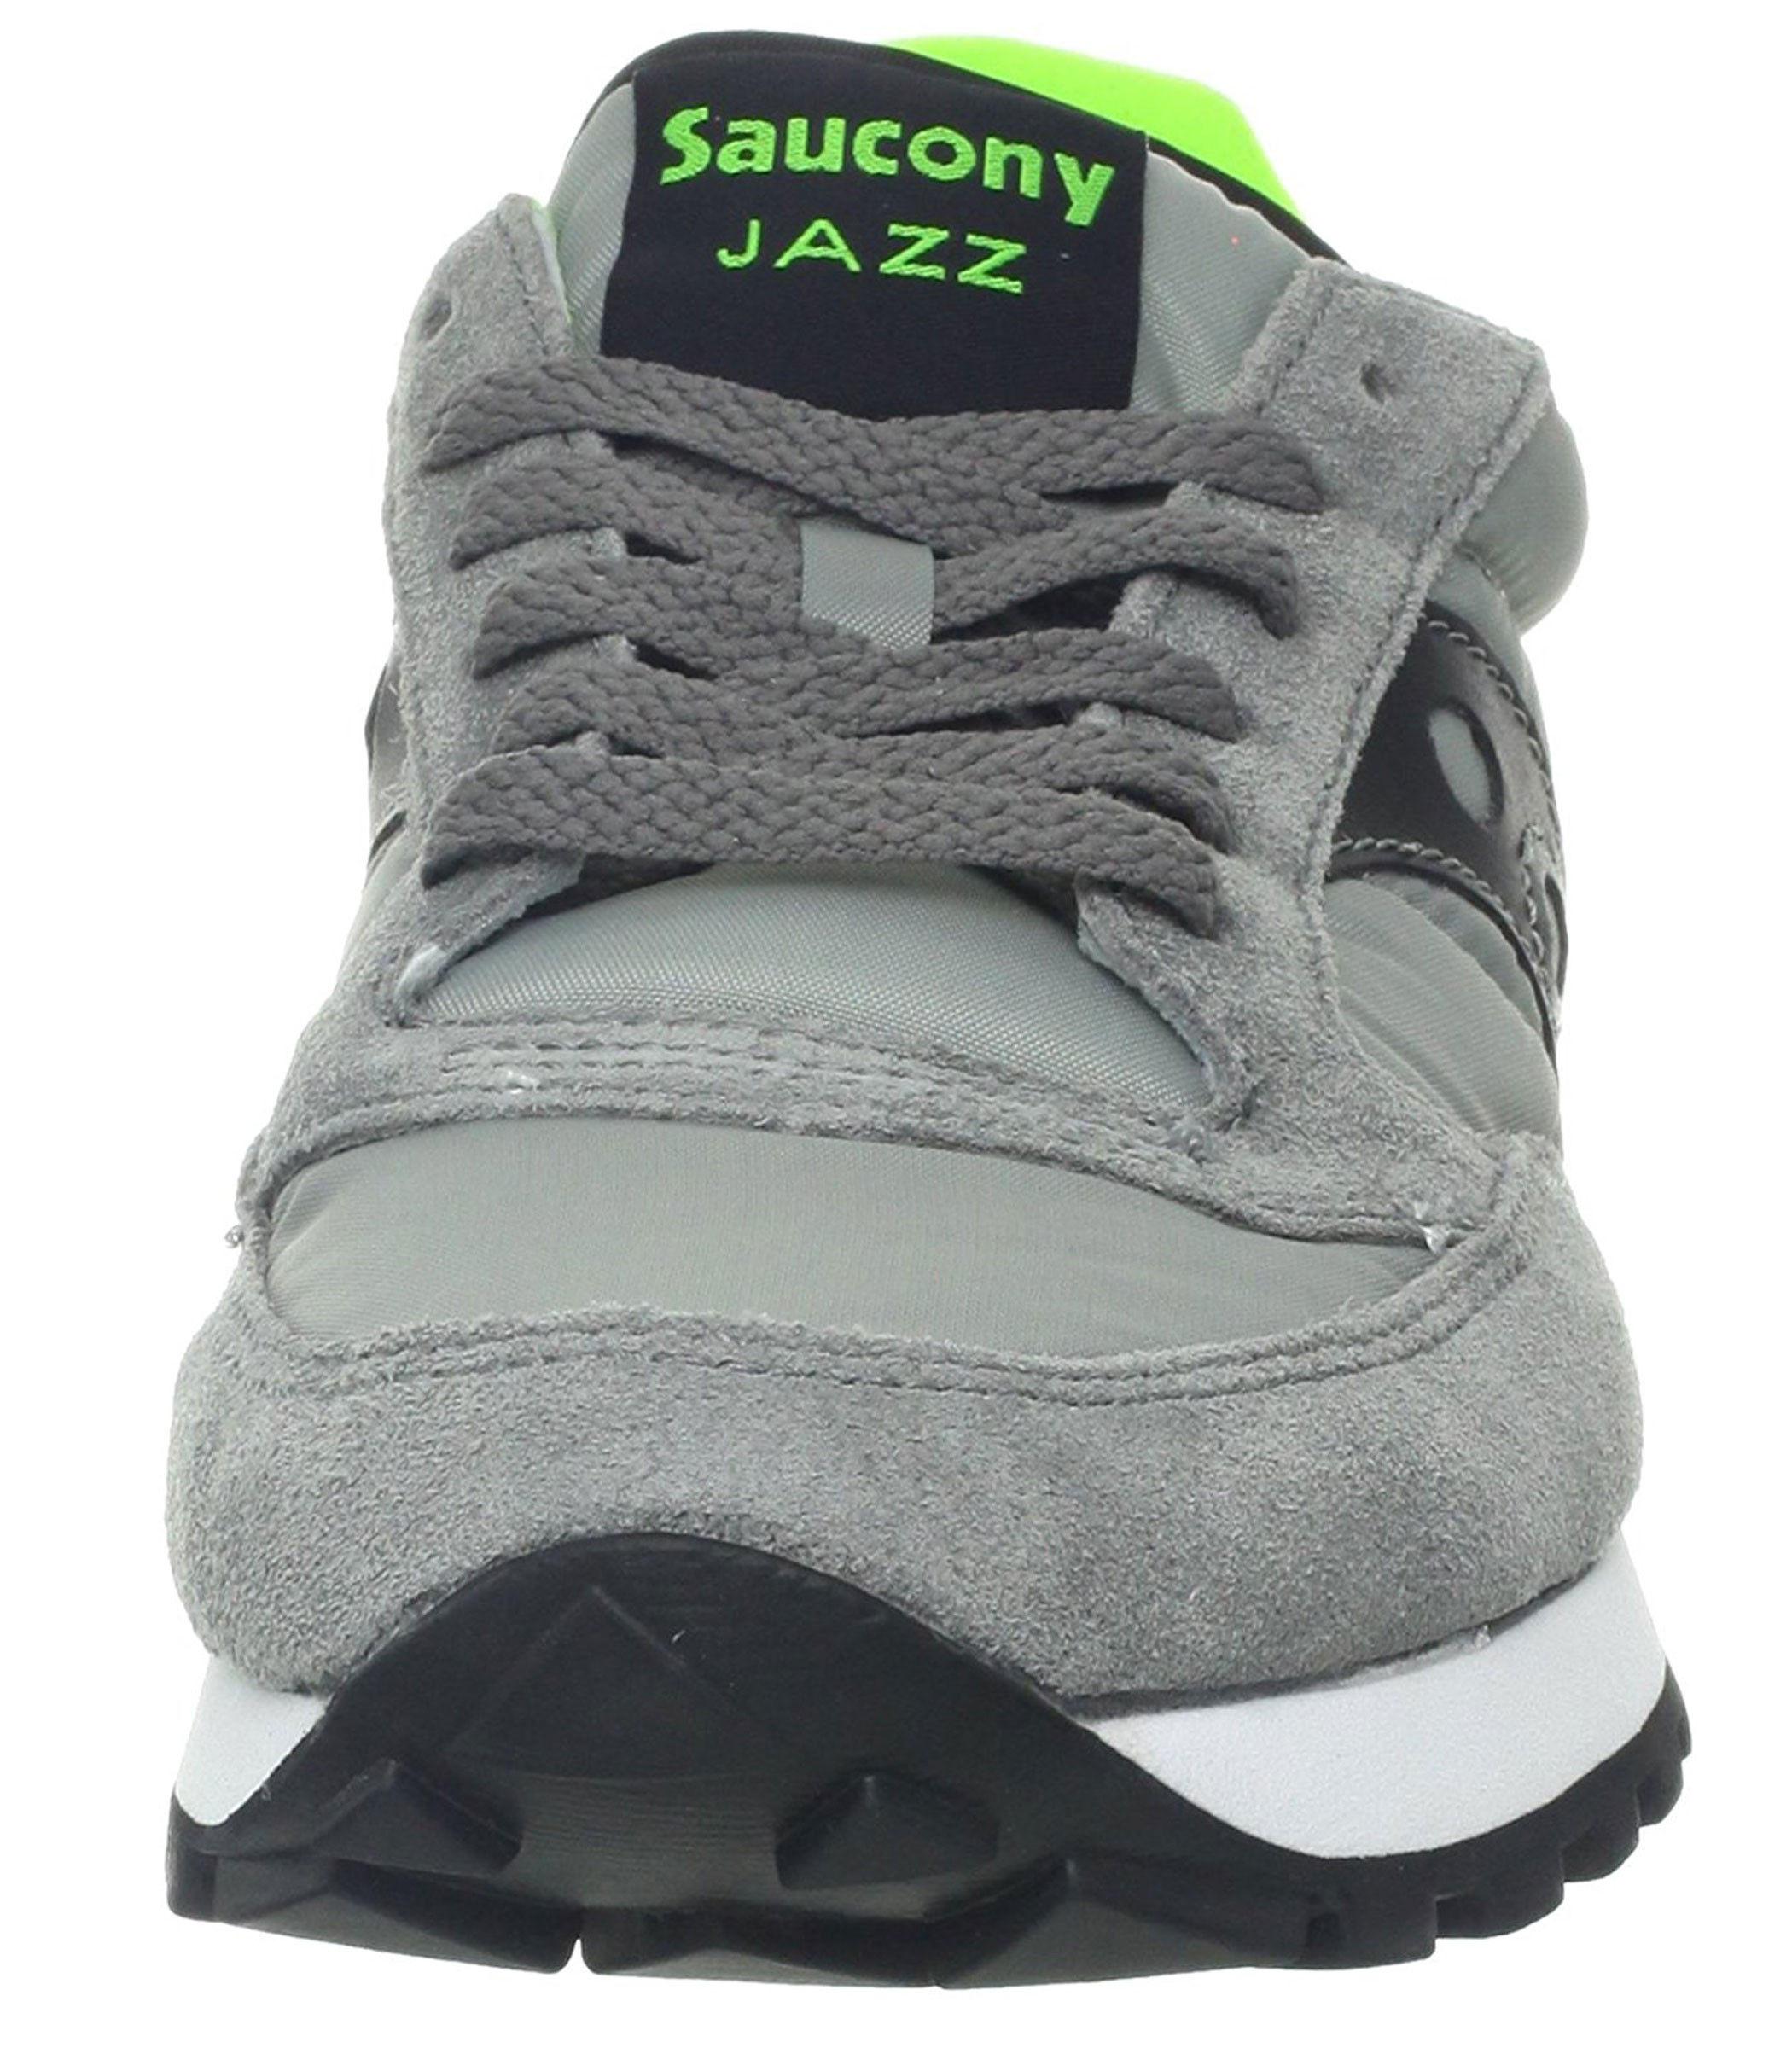 Original Jazz Montorostore Saucony Rif 288 it 2044 w45CqCxS